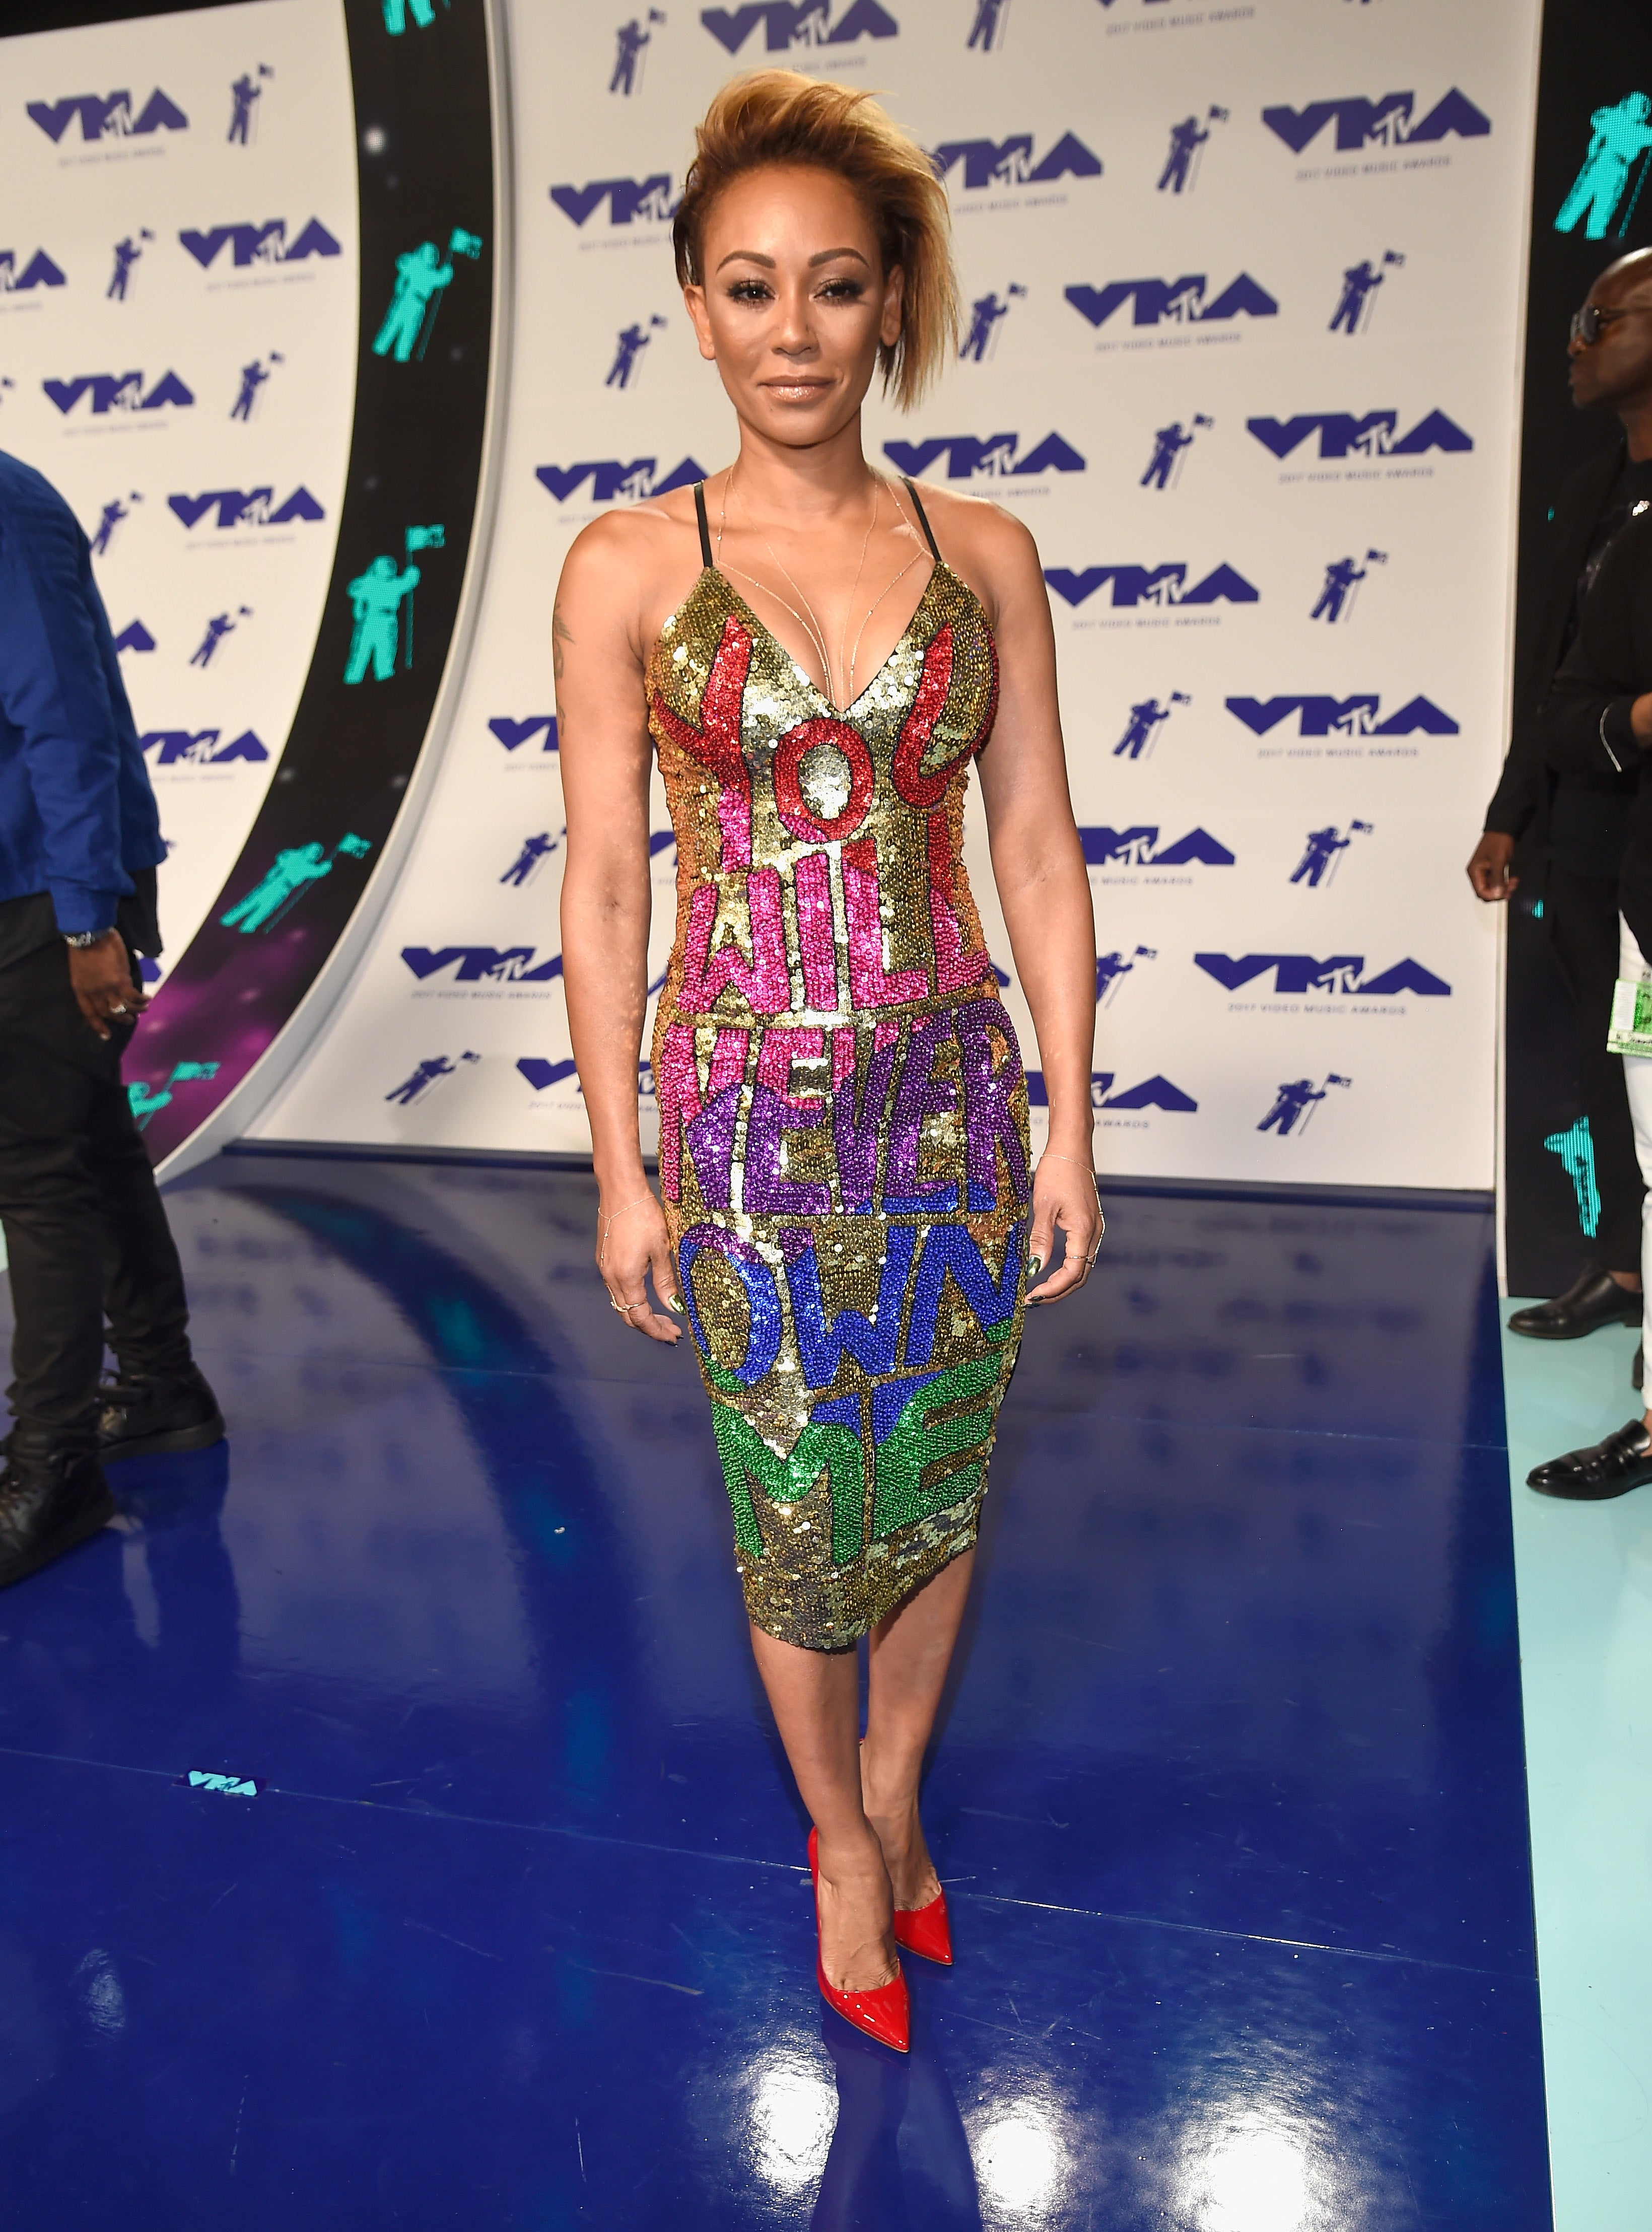 Is Mel B Making A Statement About Her Divorce With Her Mtv